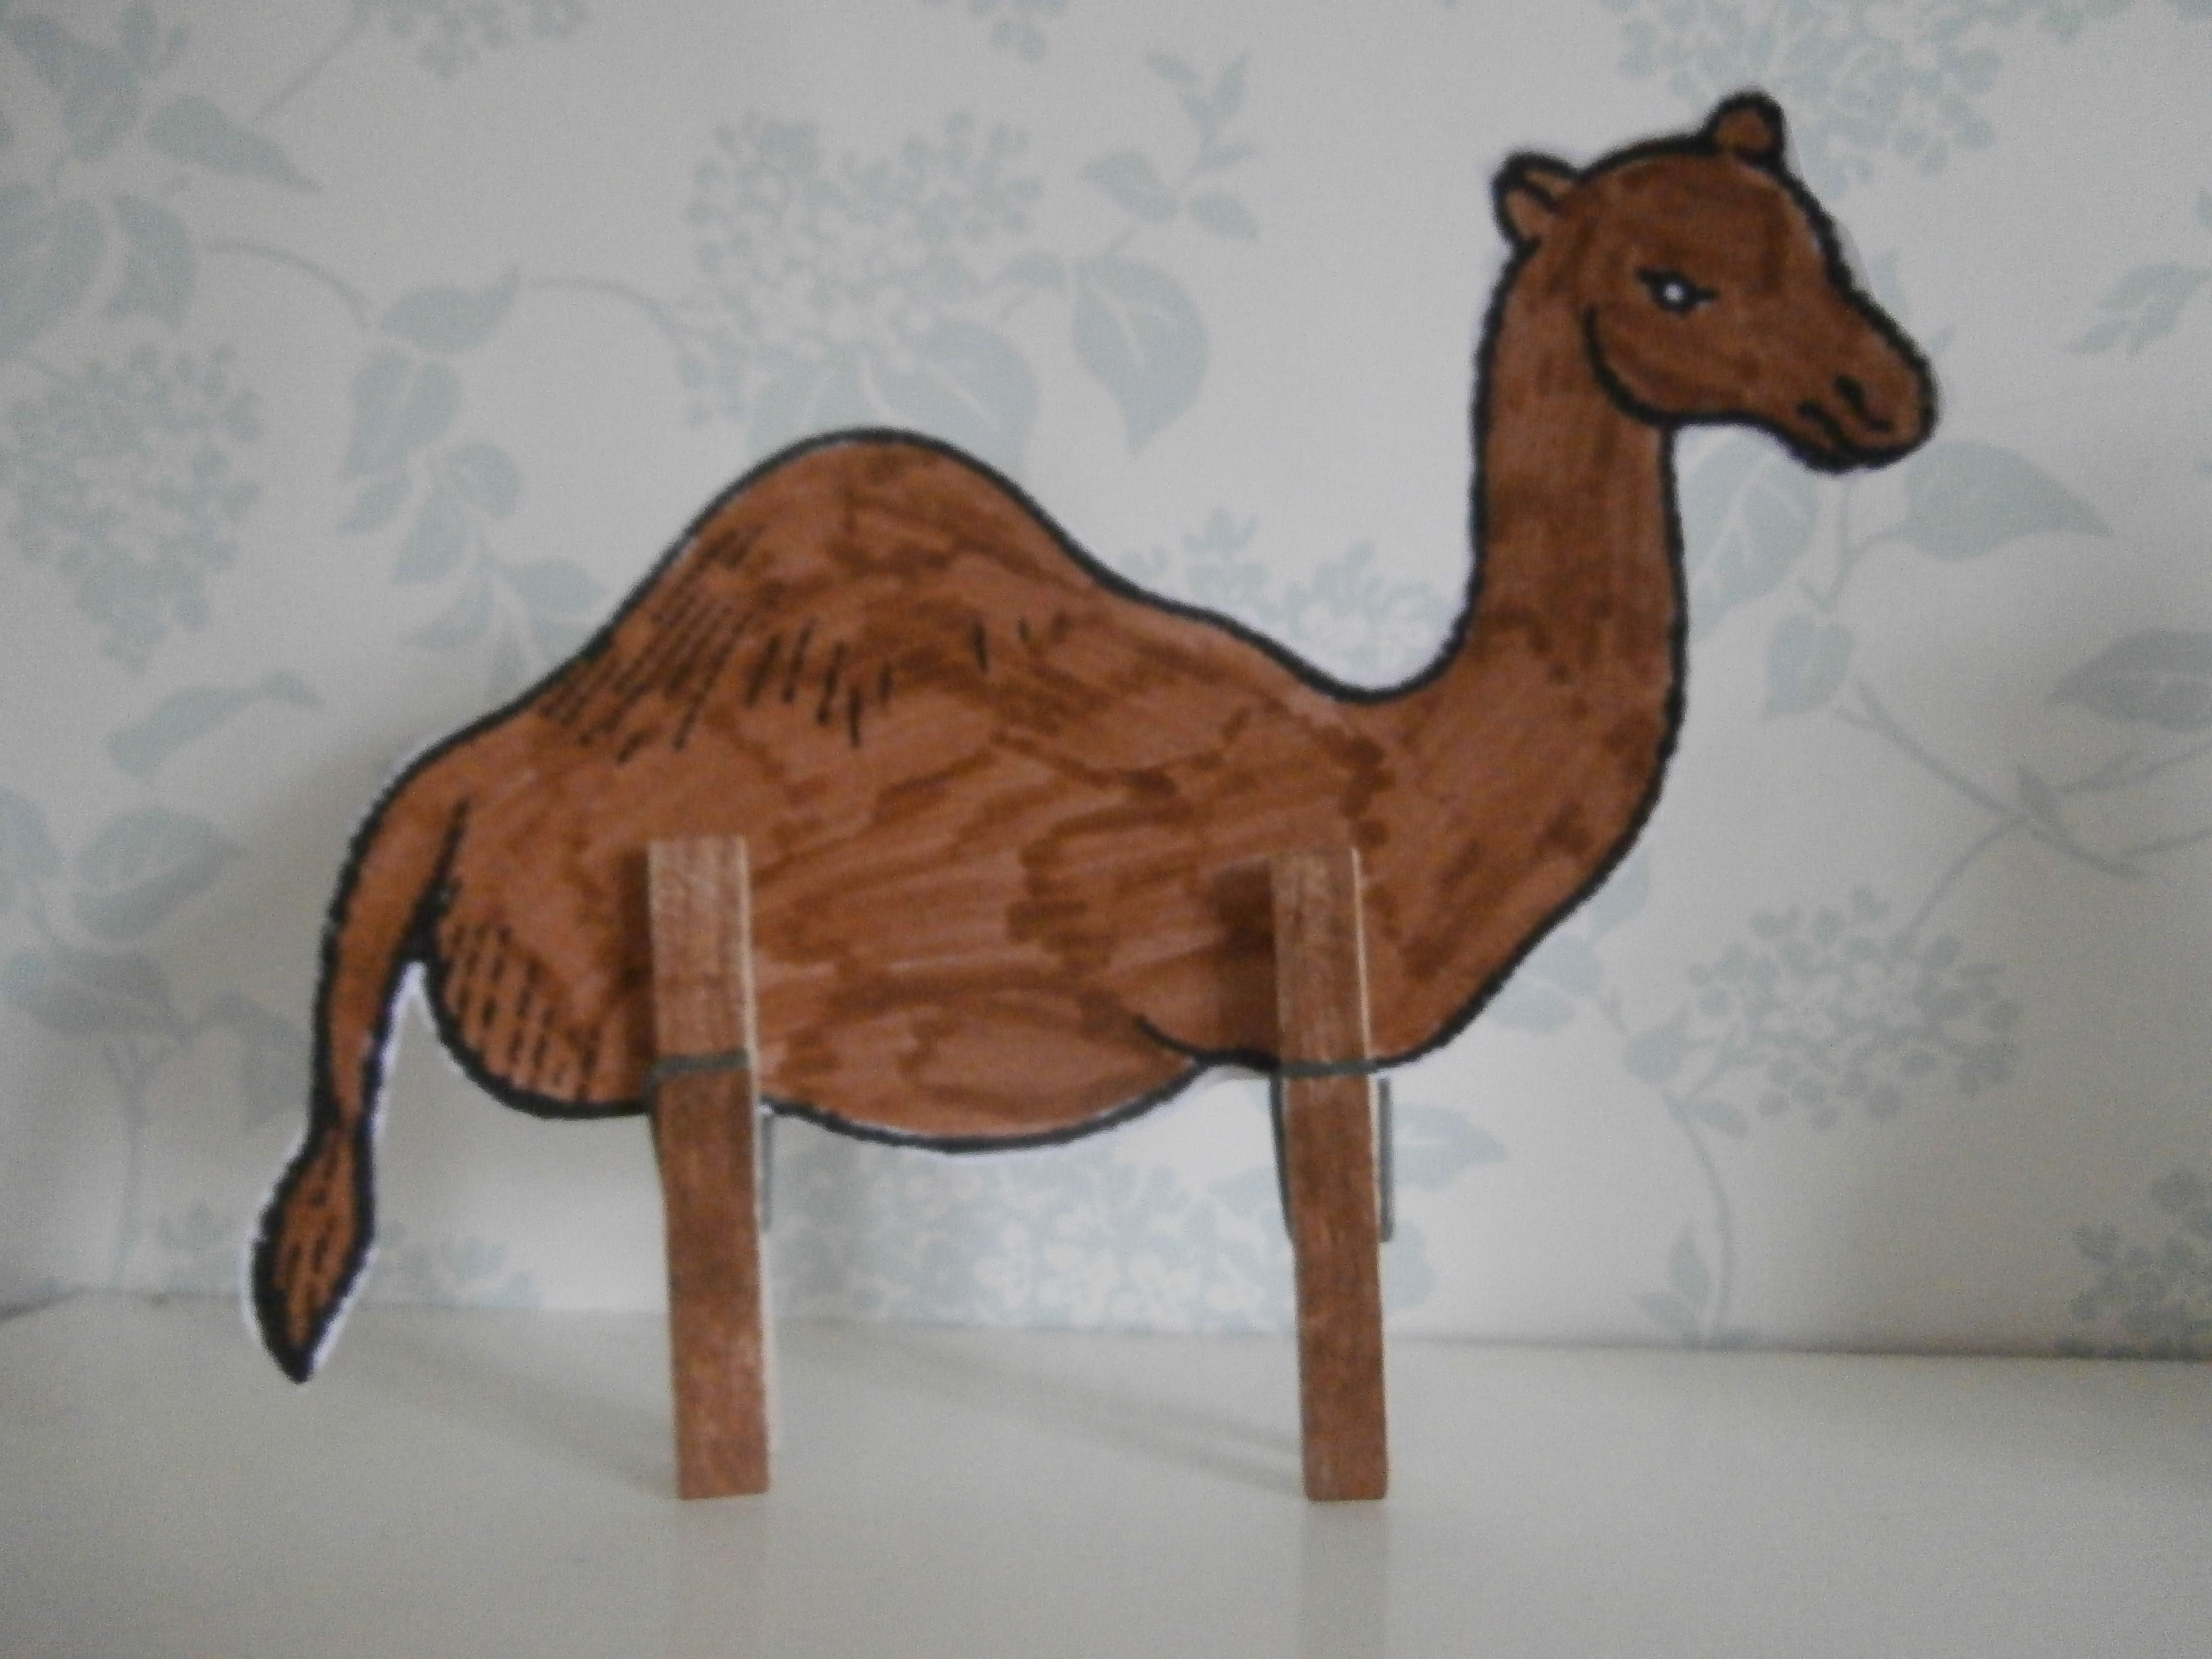 a camel from the story of isaac and rebekah a great idea to use